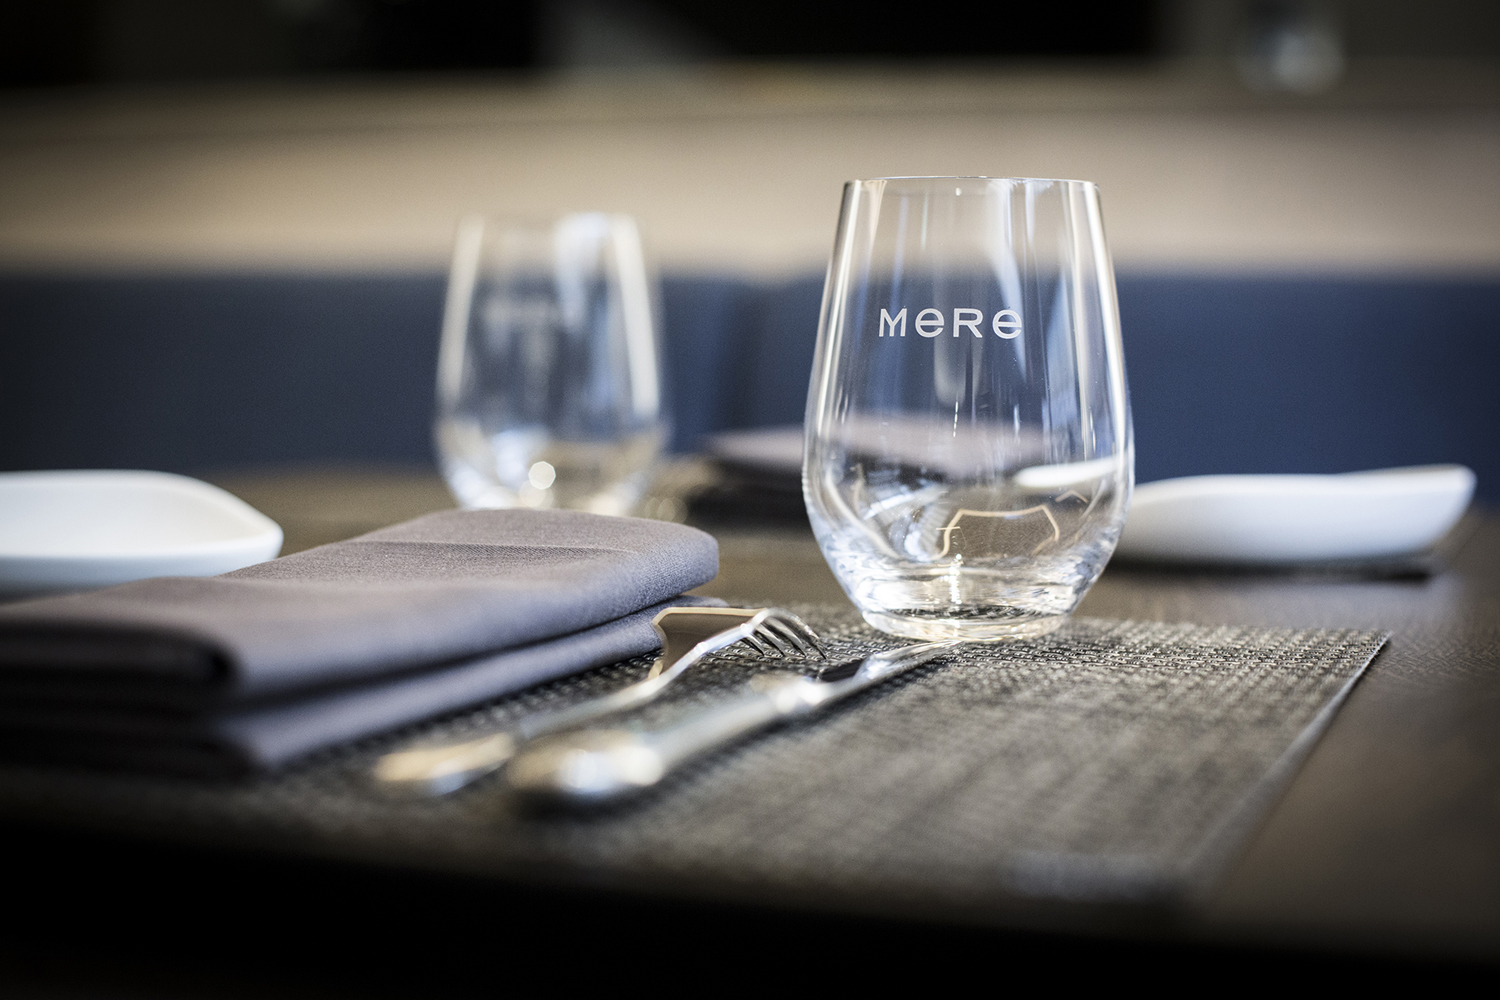 Logotype and branded glassware designed by Bibliothèque for Monica Galetti's new London restaurant Mere